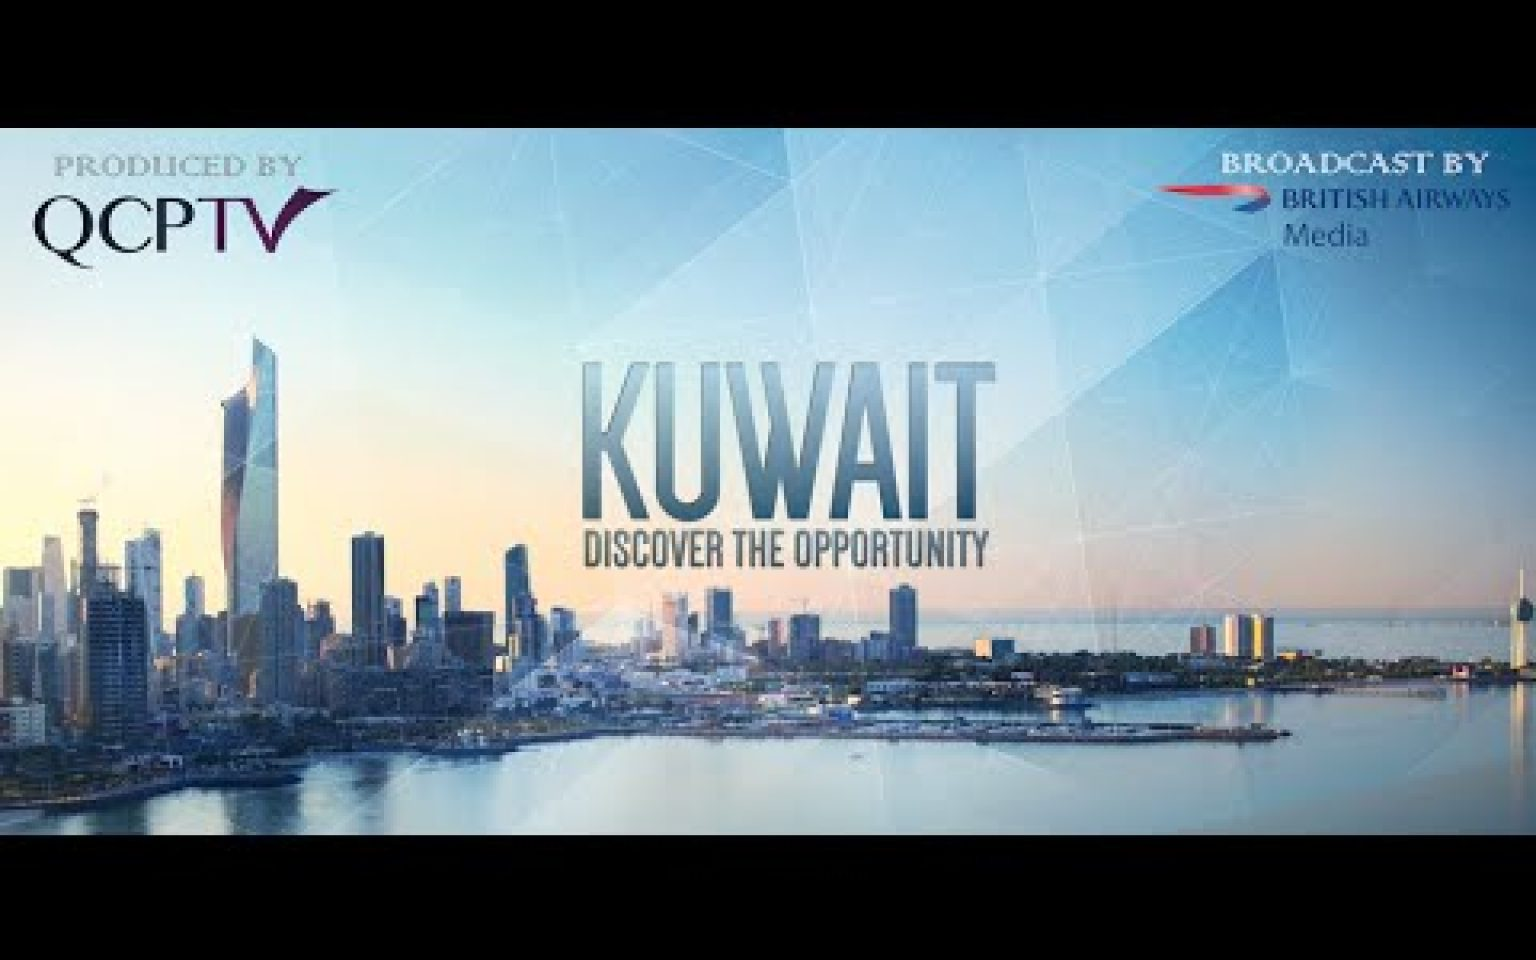 KUWAIT – Discover the Opportunity